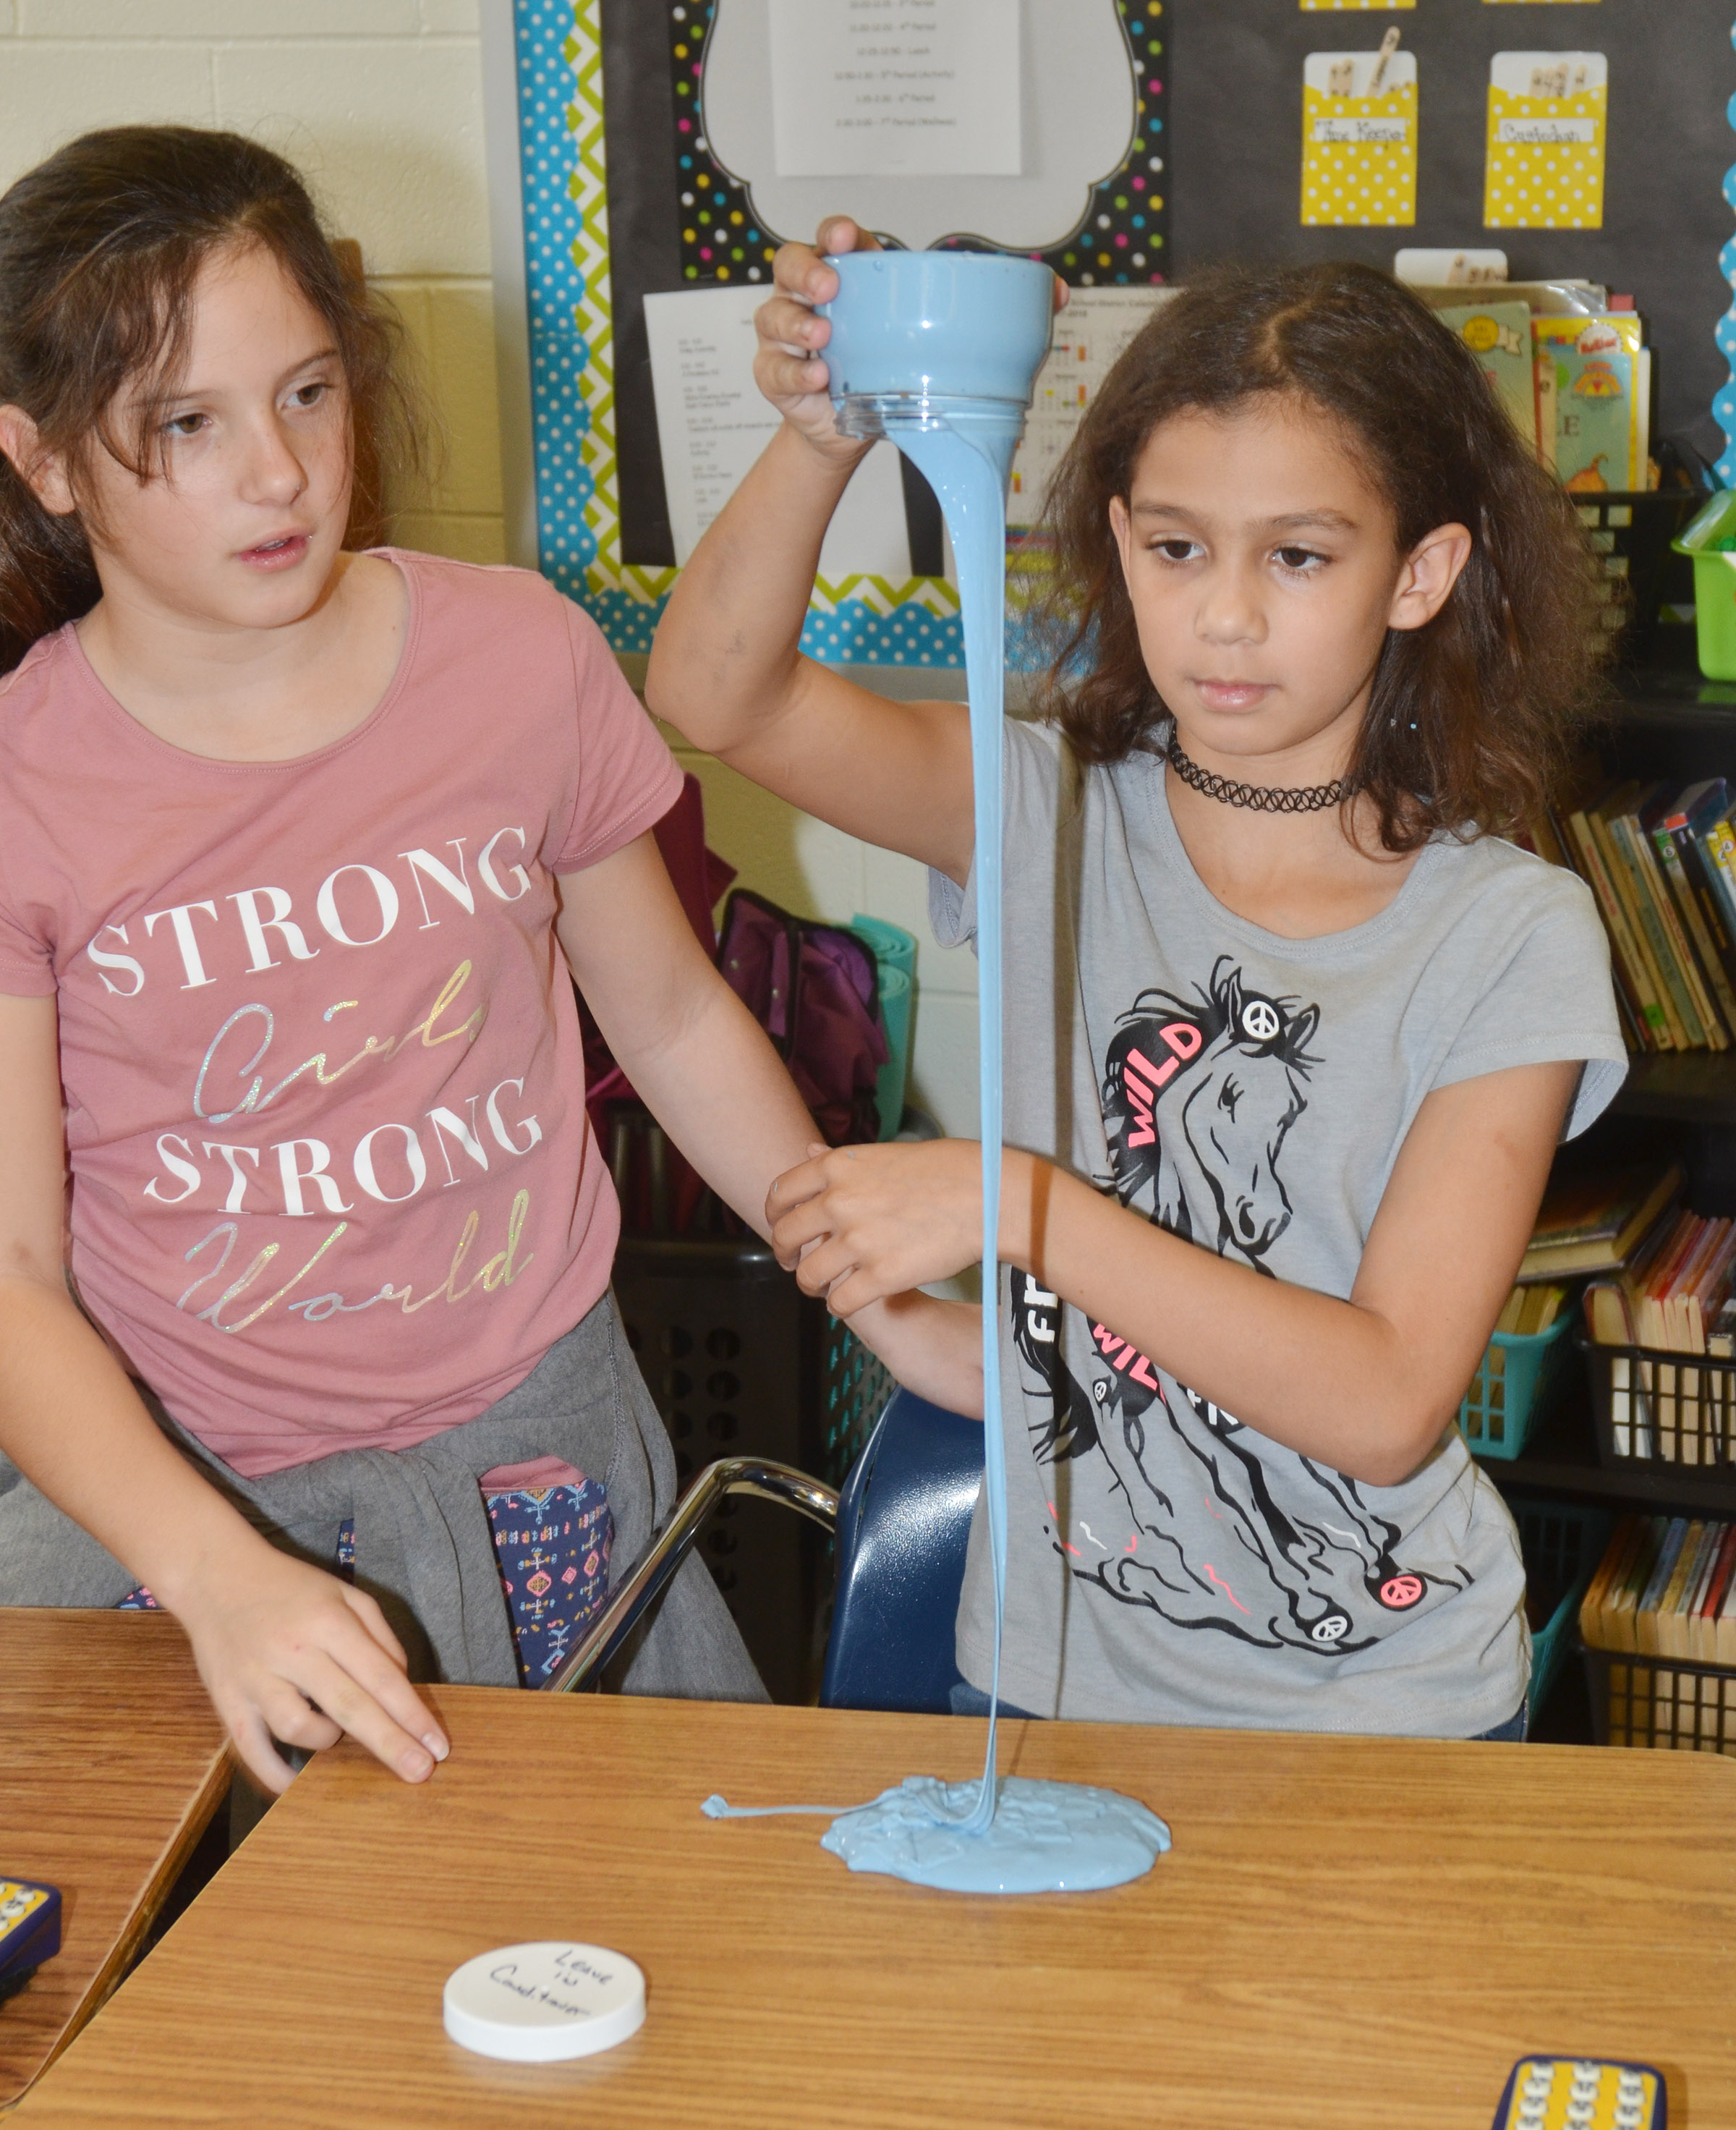 CES fifth-graders Chloe Hoppes, at left, and Mackenzie Negron play with slime.